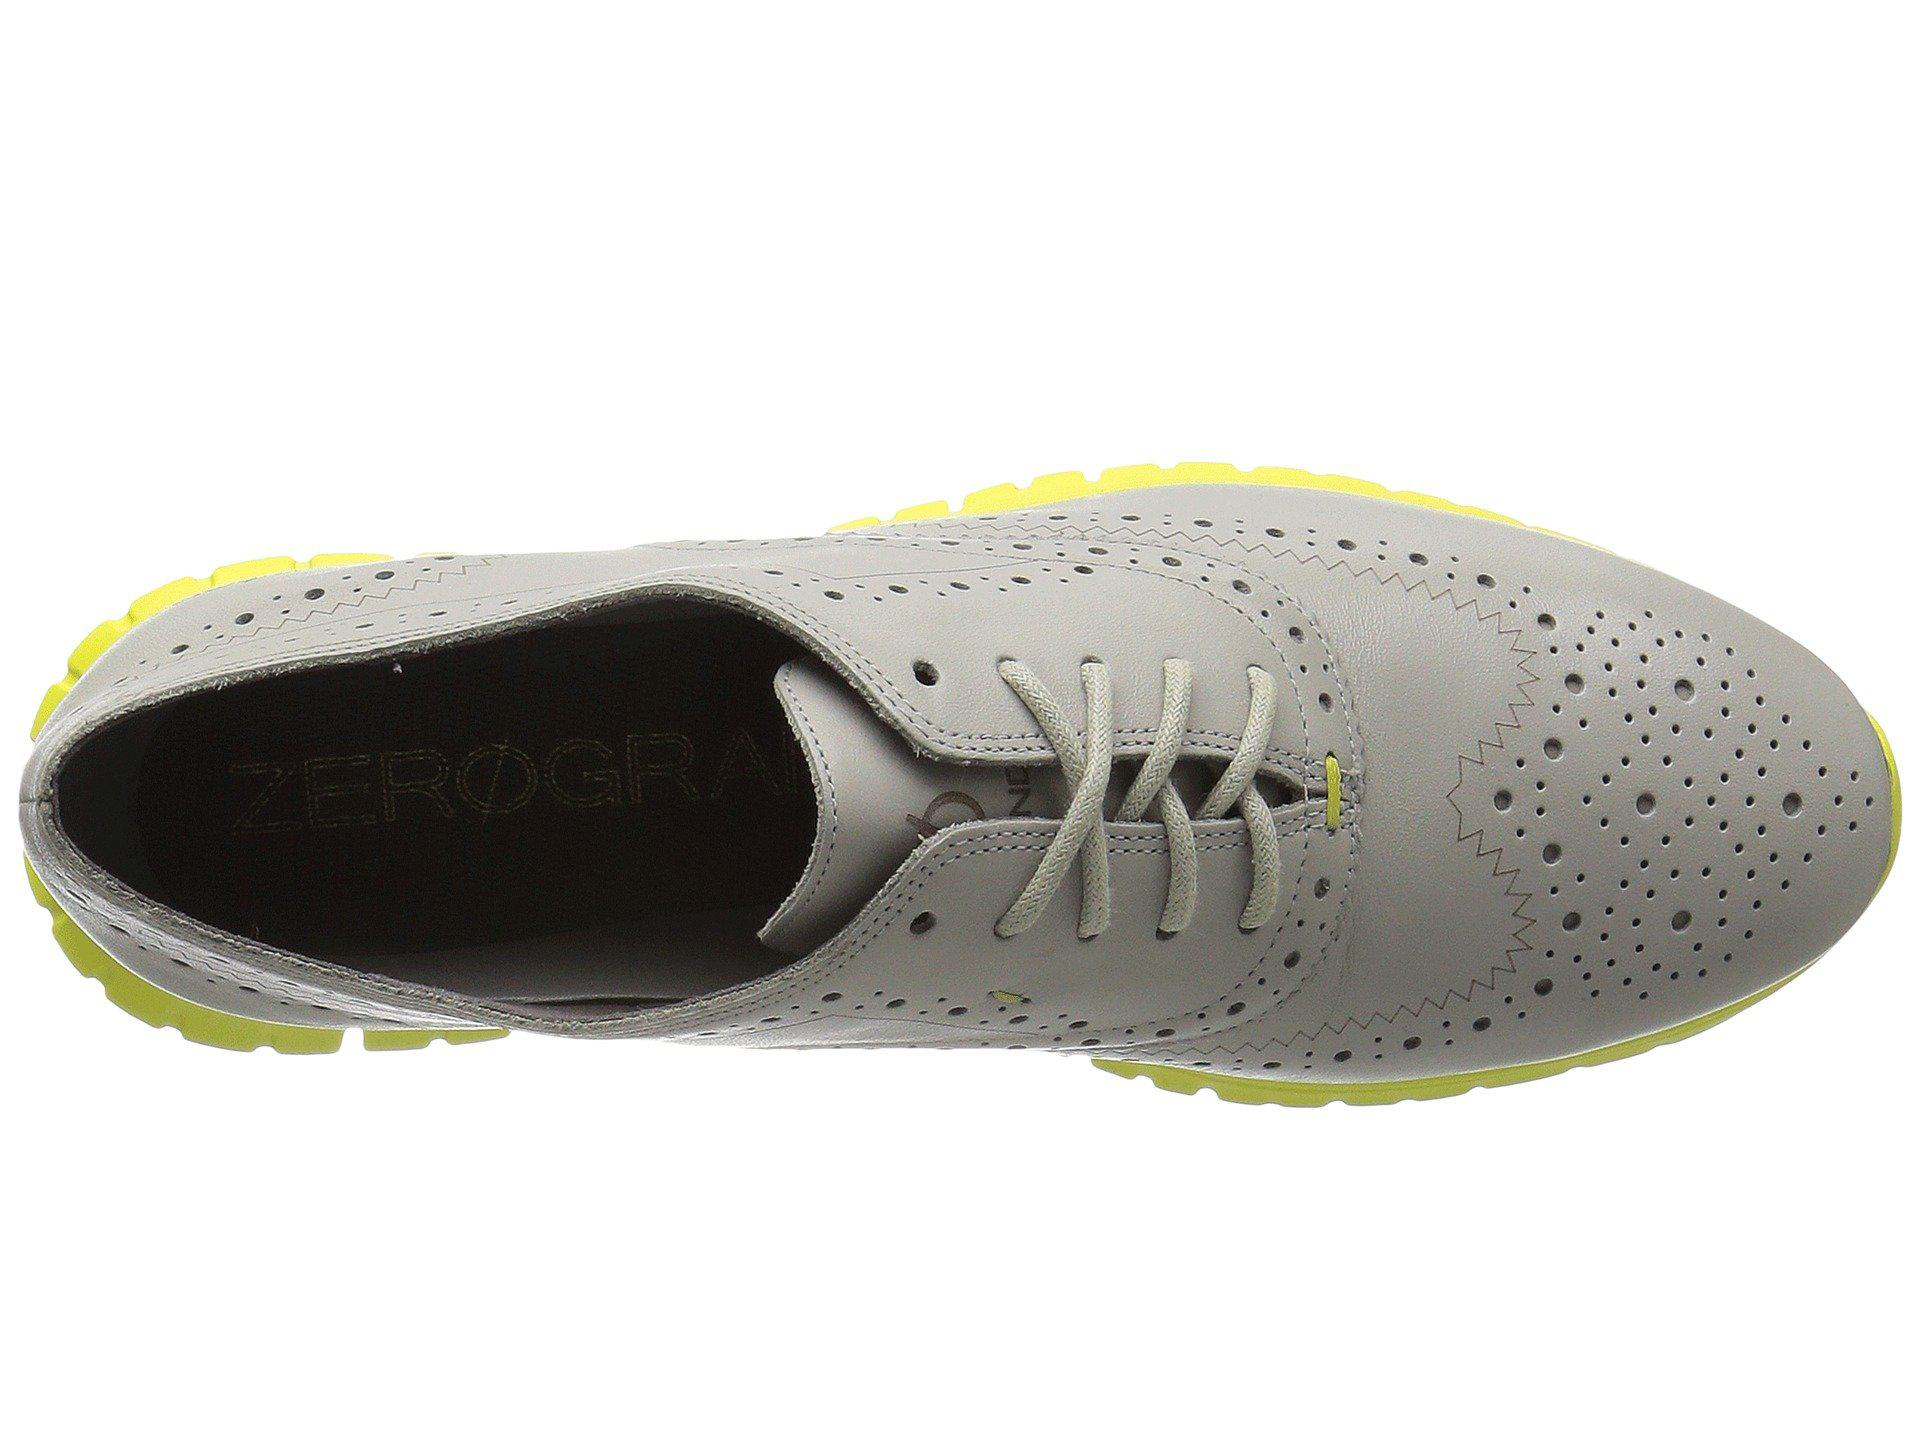 d35aafe139c Gallery. Previously sold at: 6PM · Women's Cole Haan Oxfords